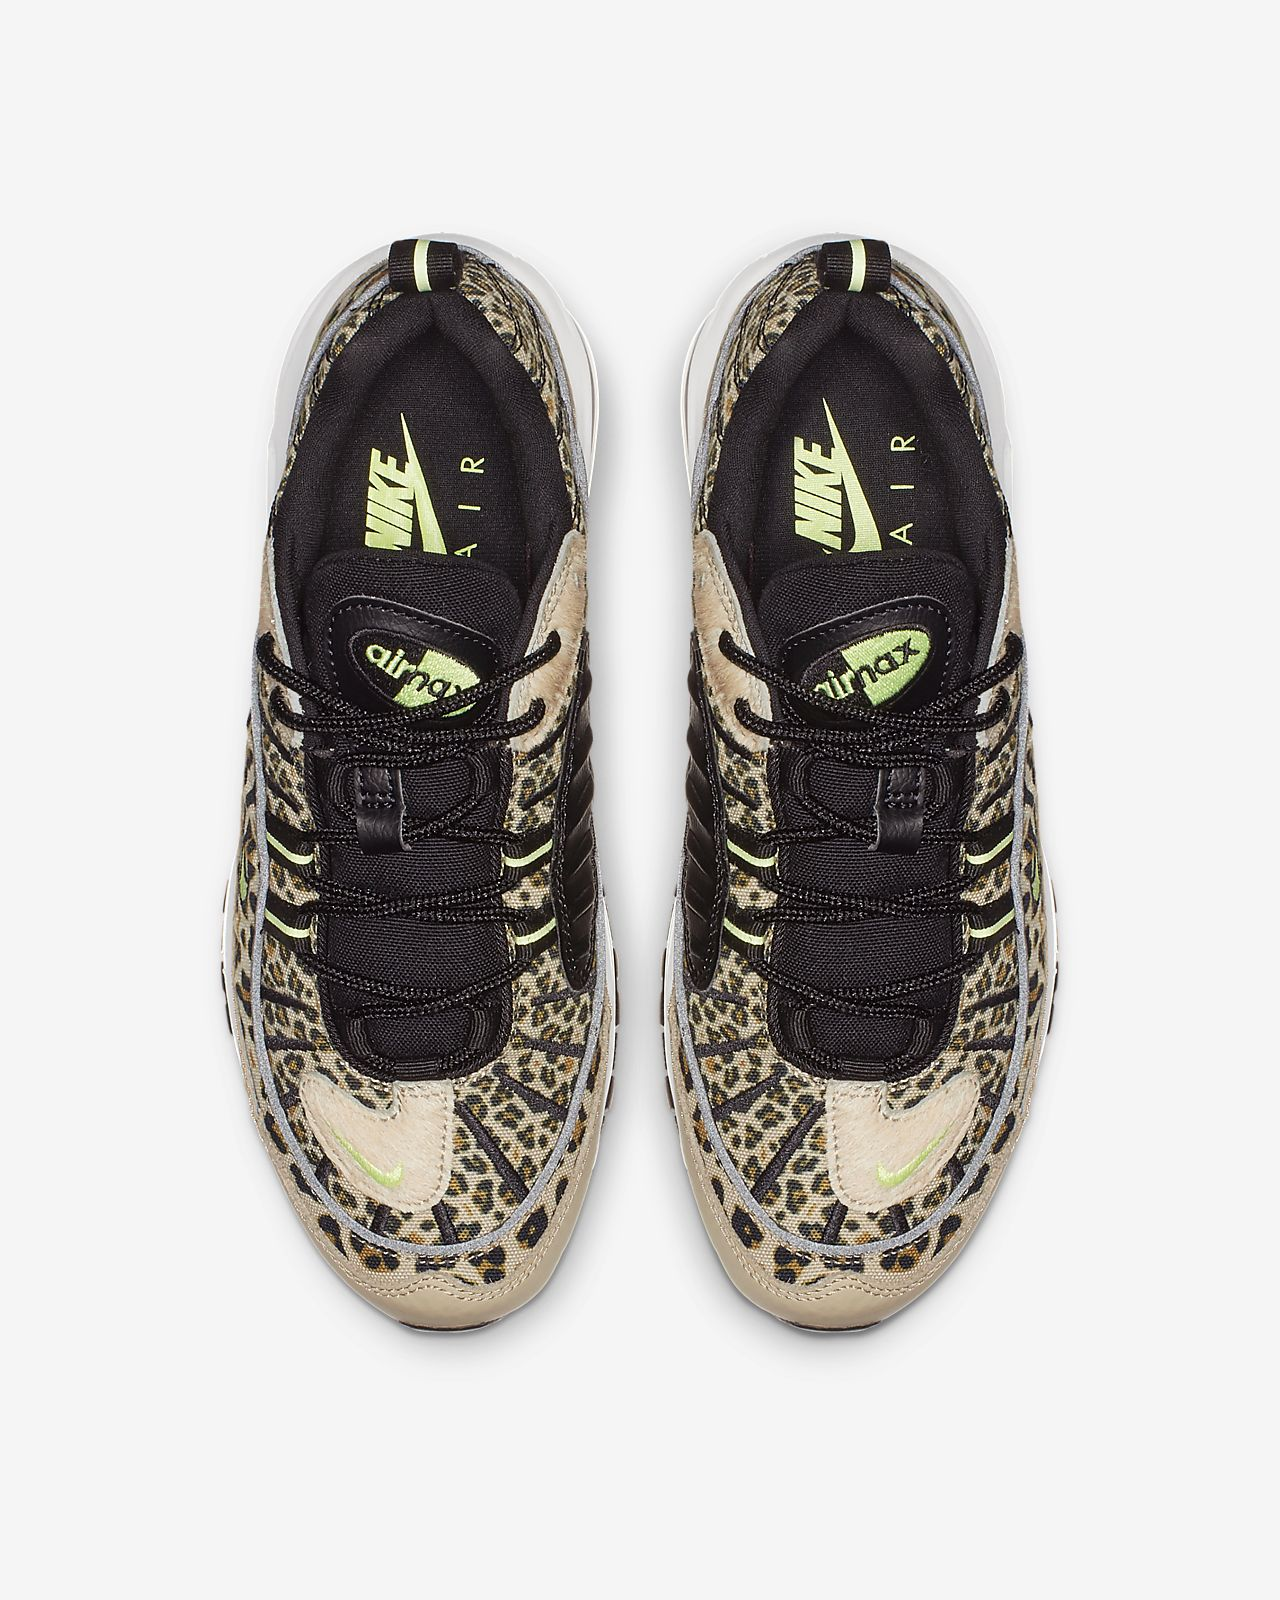 50120cee60 Nike Air Max 98 Premium Animal Women's Shoe. Nike.com